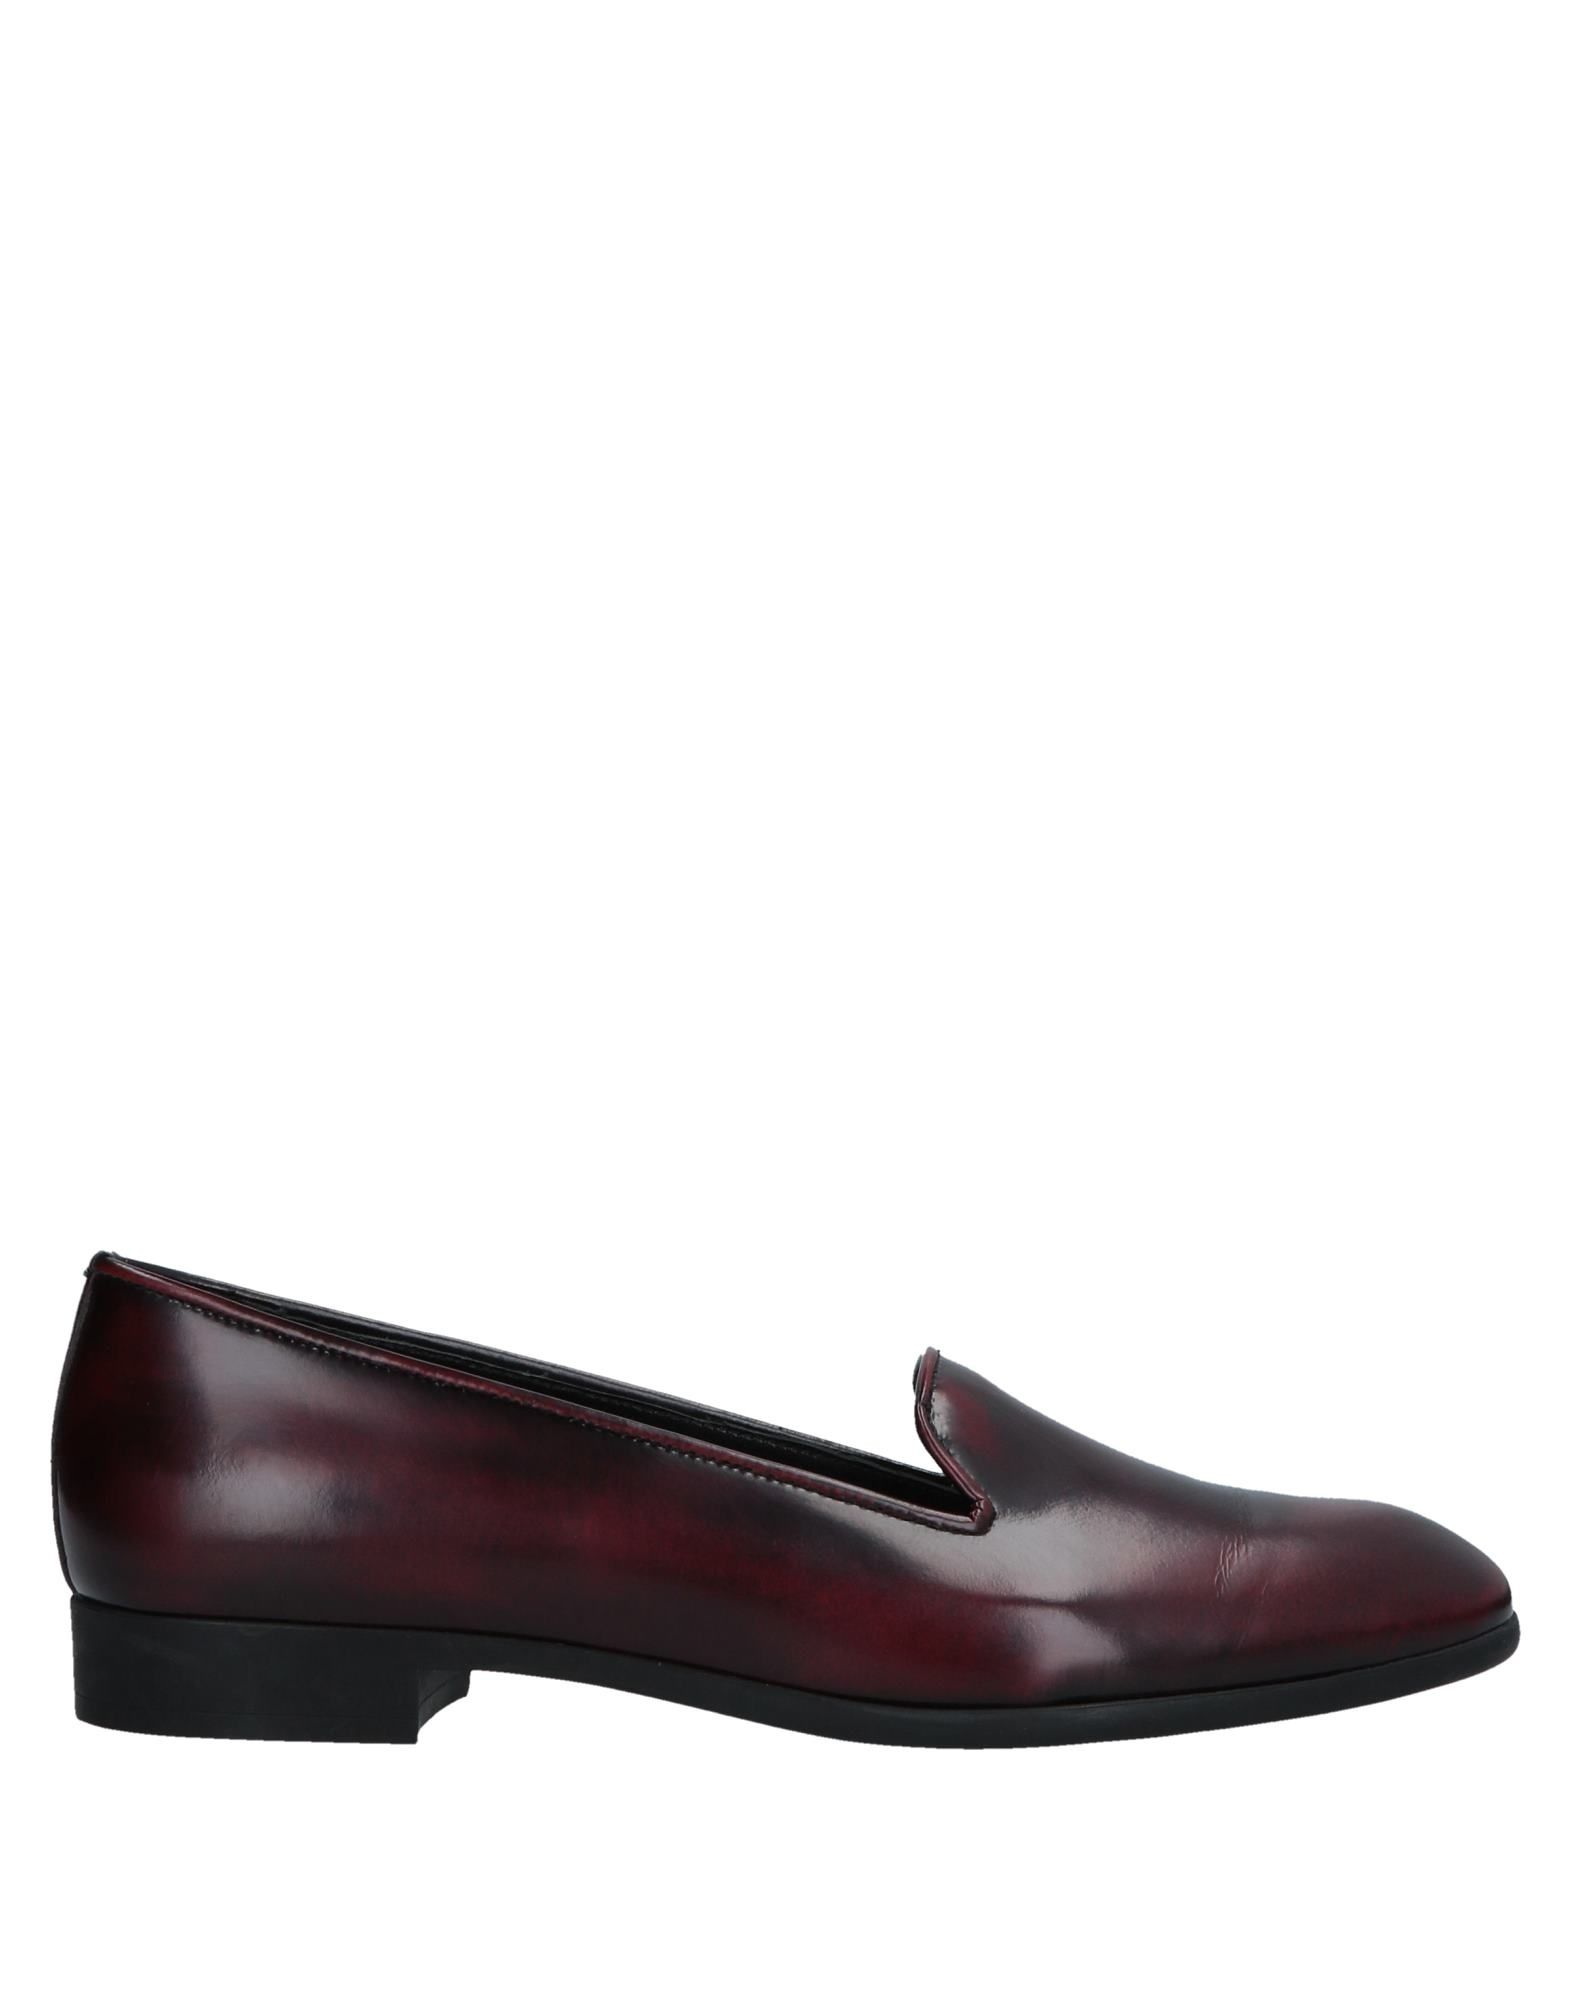 Sergio Rossi Loafers - Women Sergio Rossi Australia Loafers online on  Australia Rossi - 11568037OR a1c40f